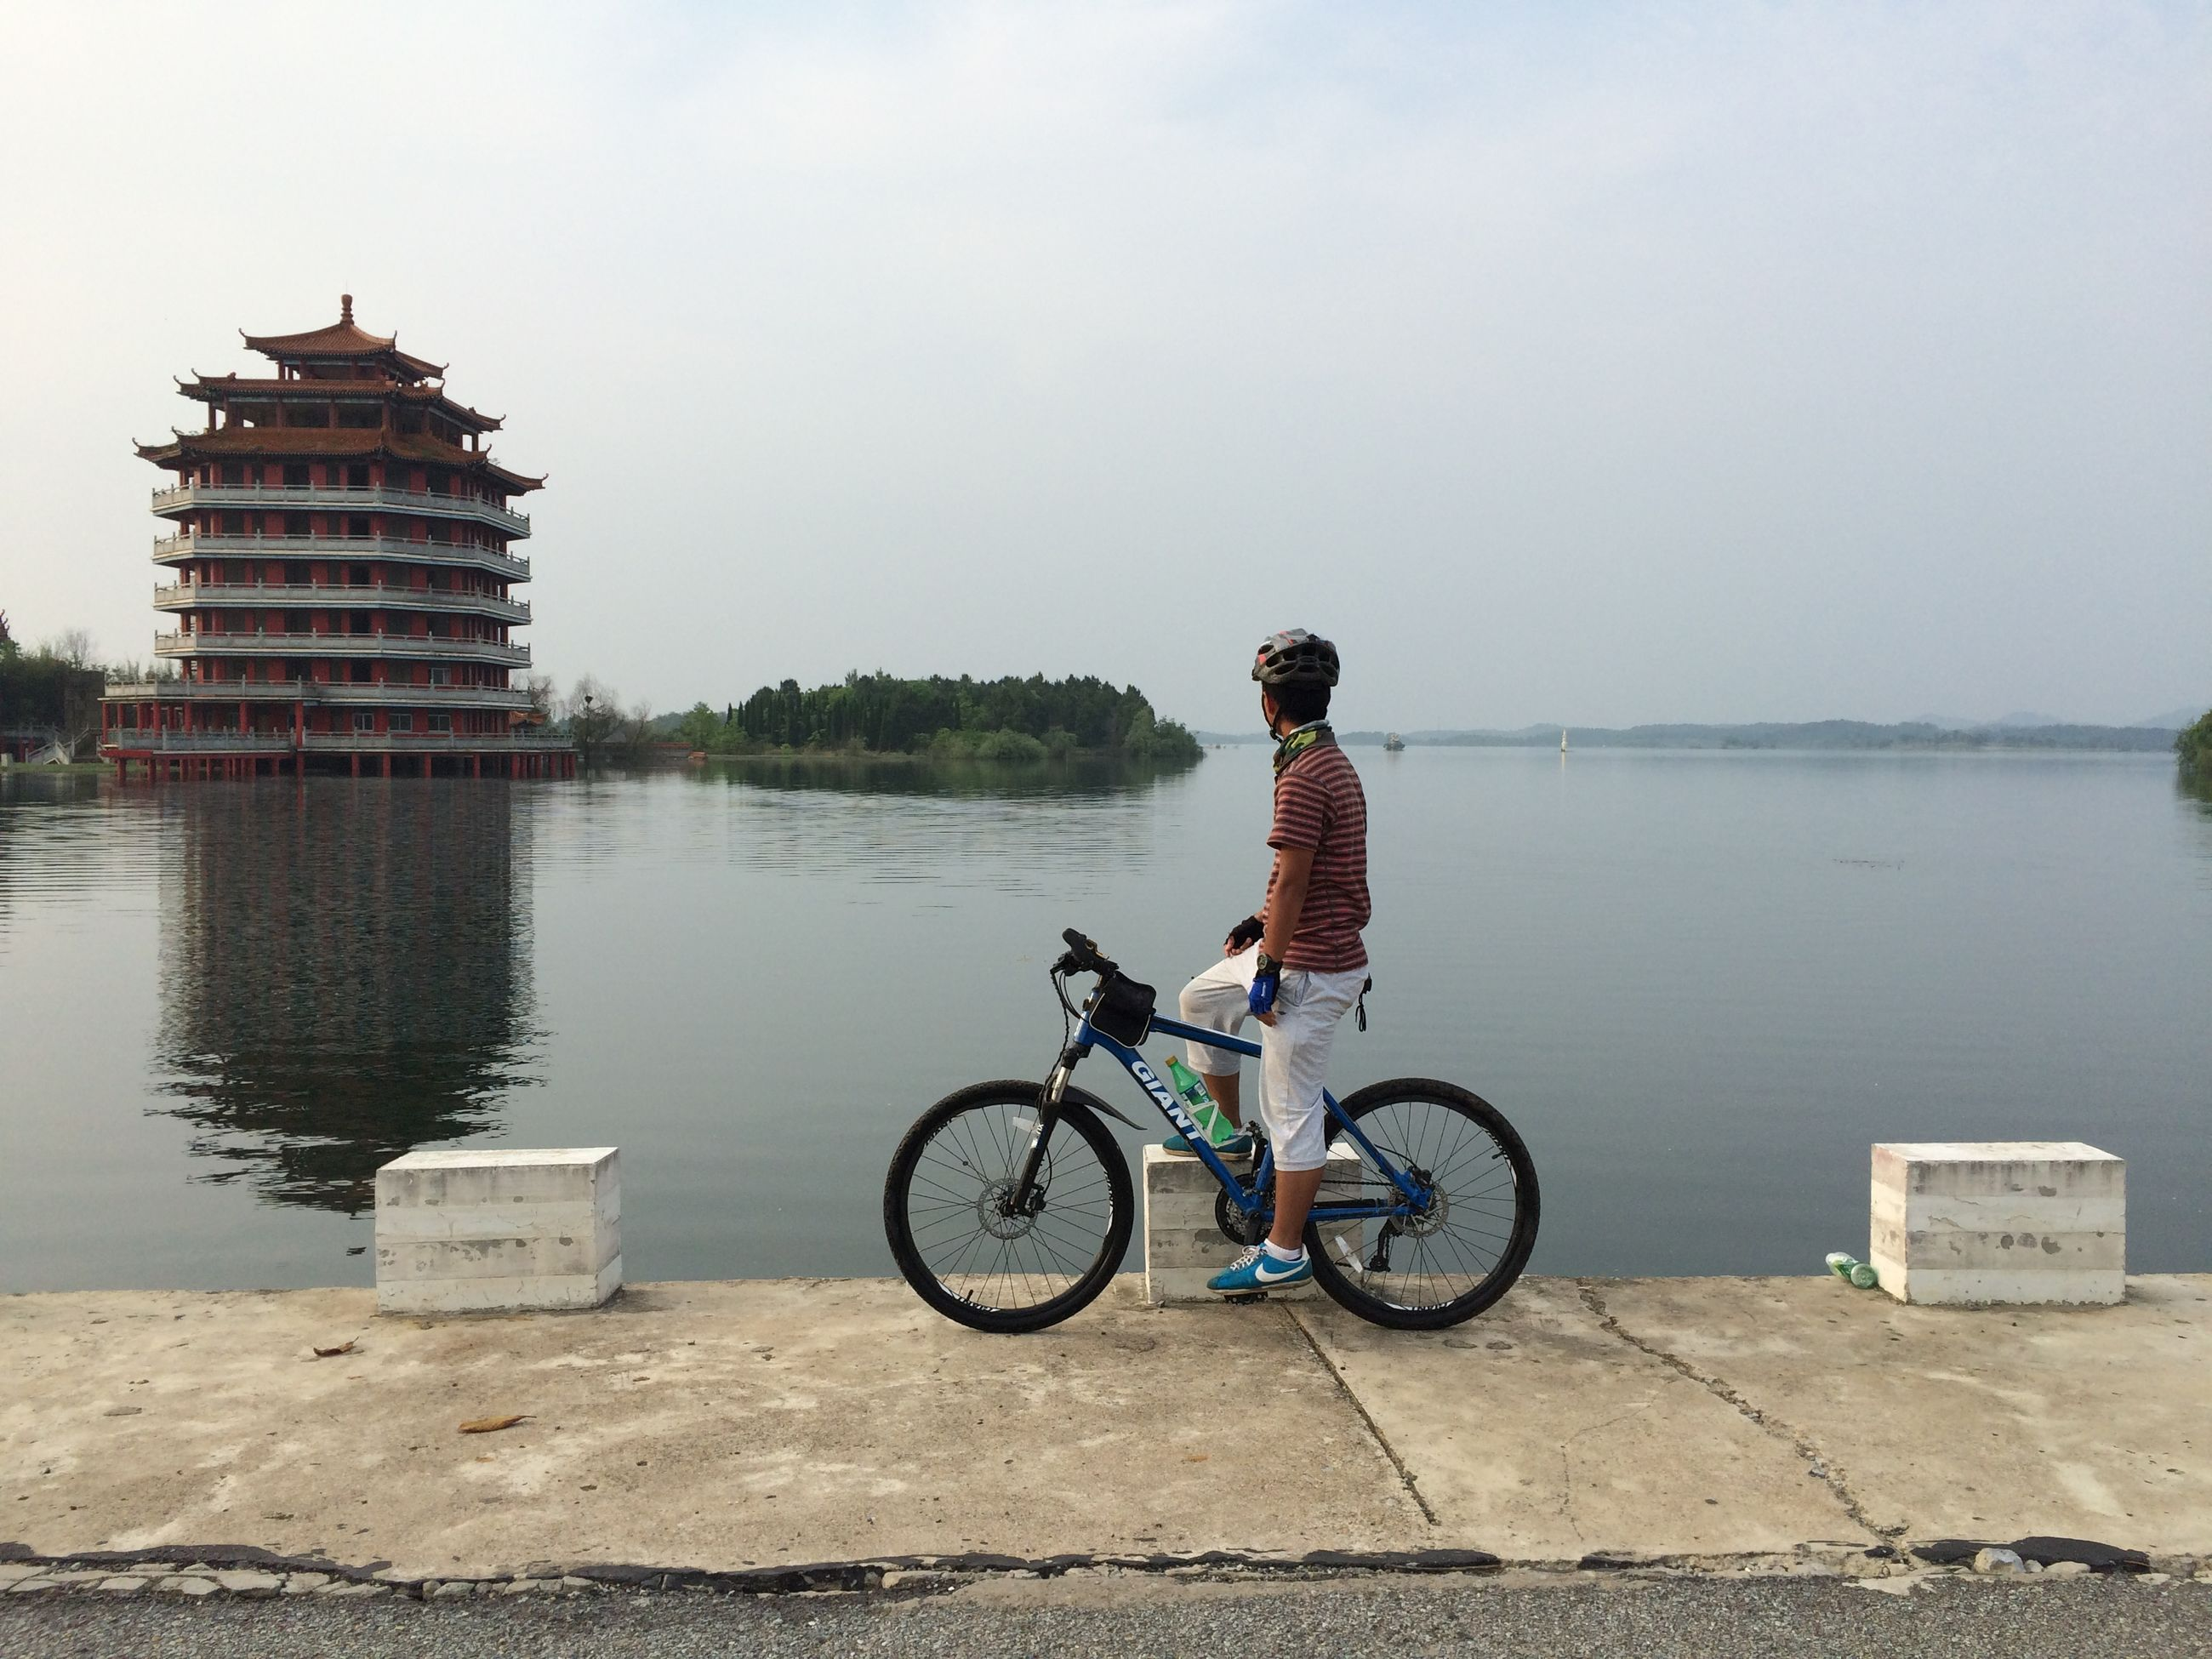 bicycle, transportation, mode of transport, water, land vehicle, riding, stationary, sky, travel, parked, full length, parking, men, lifestyles, leisure activity, side view, cycling, day